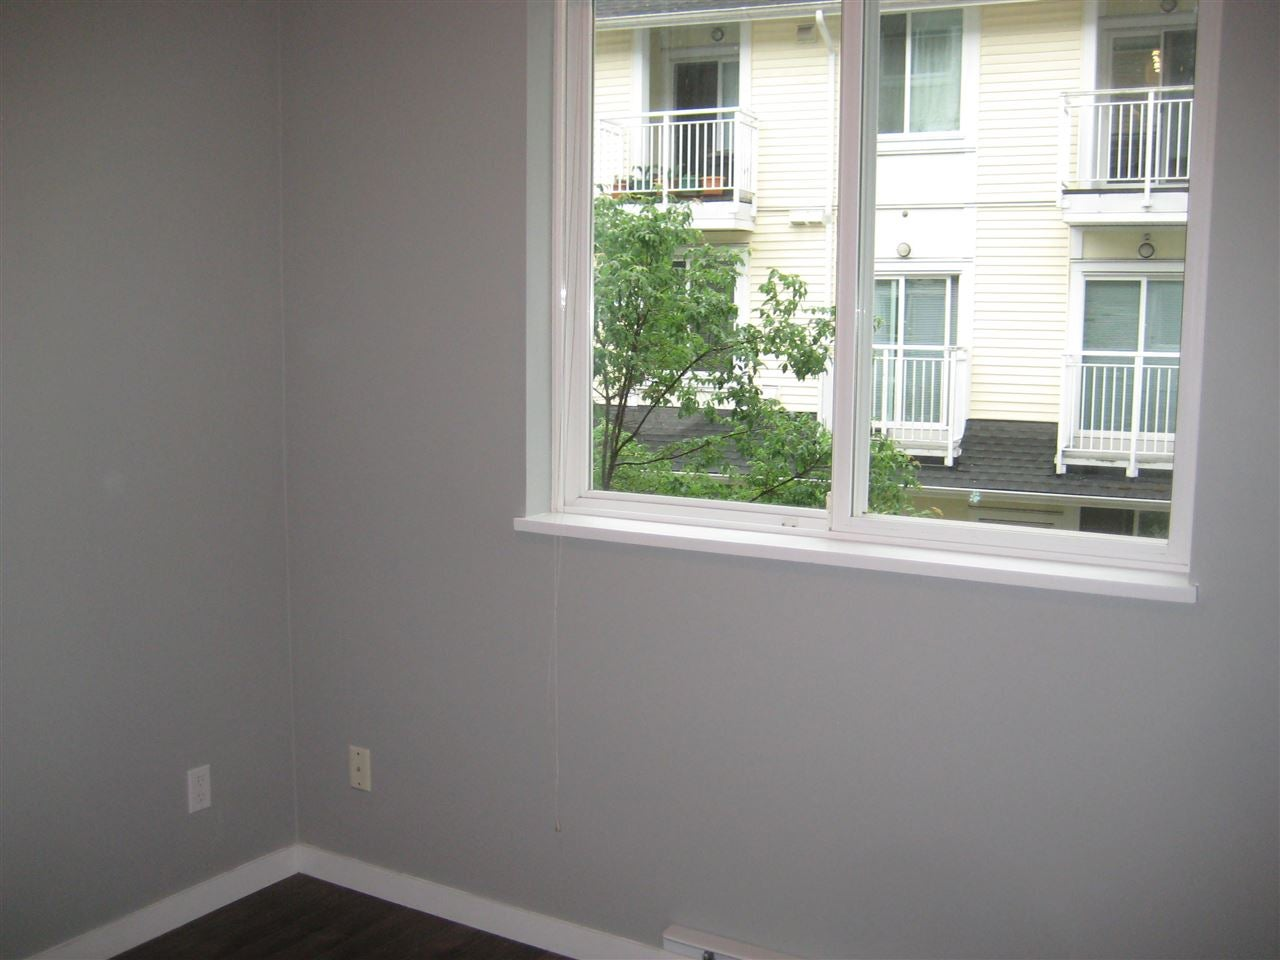 23 6965 HASTINGS STREET - Sperling-Duthie Apartment/Condo for sale, 2 Bedrooms (R2482053) - #9